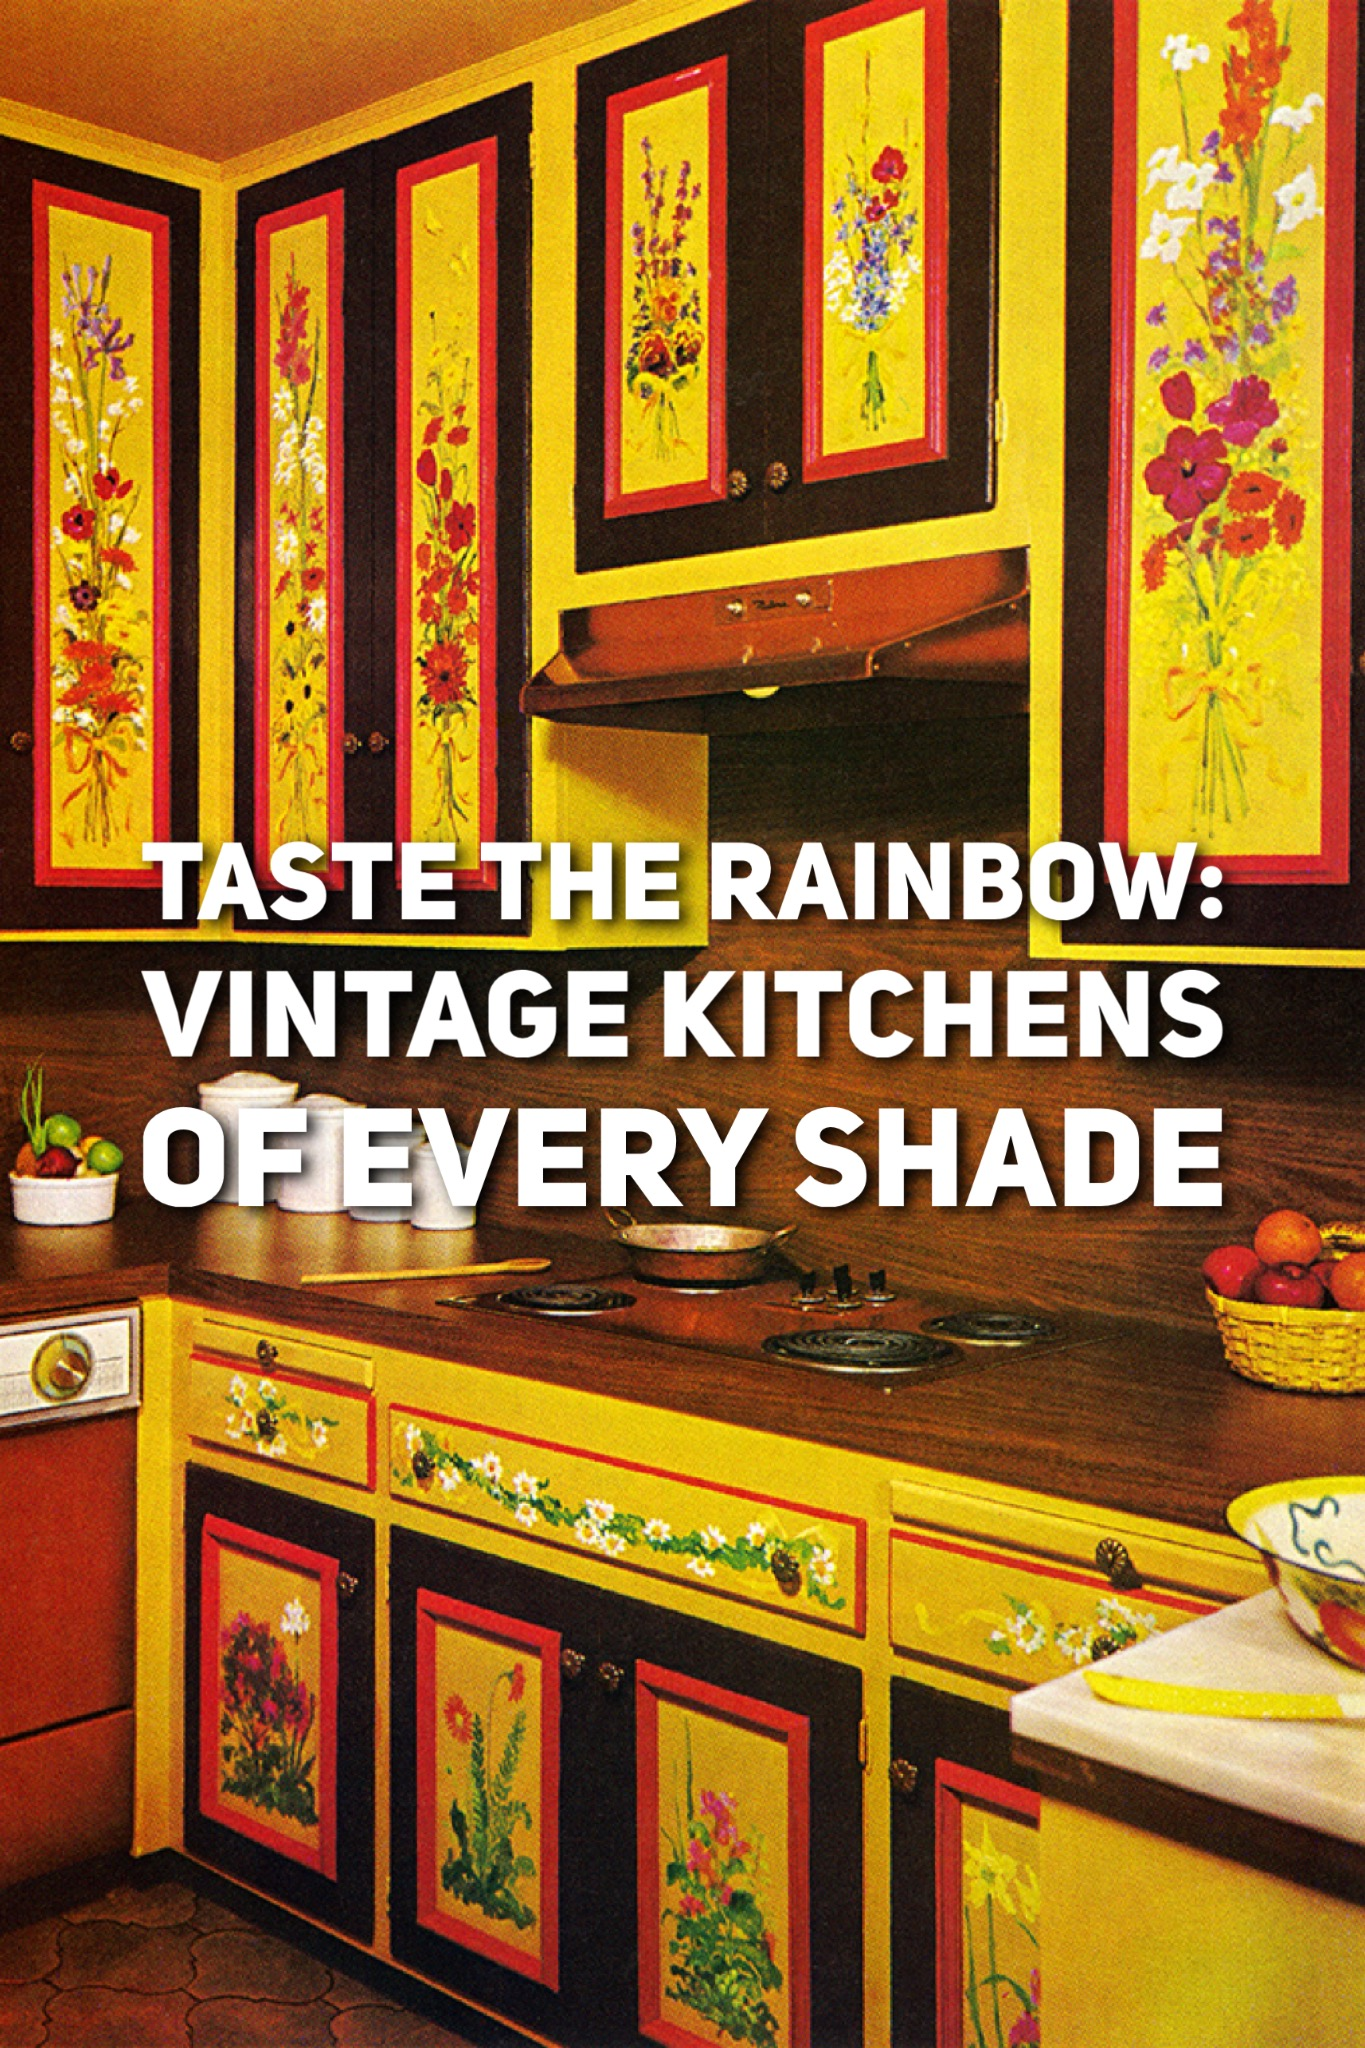 Taste the Rainbow: Vintage Kitchens of Every Shade